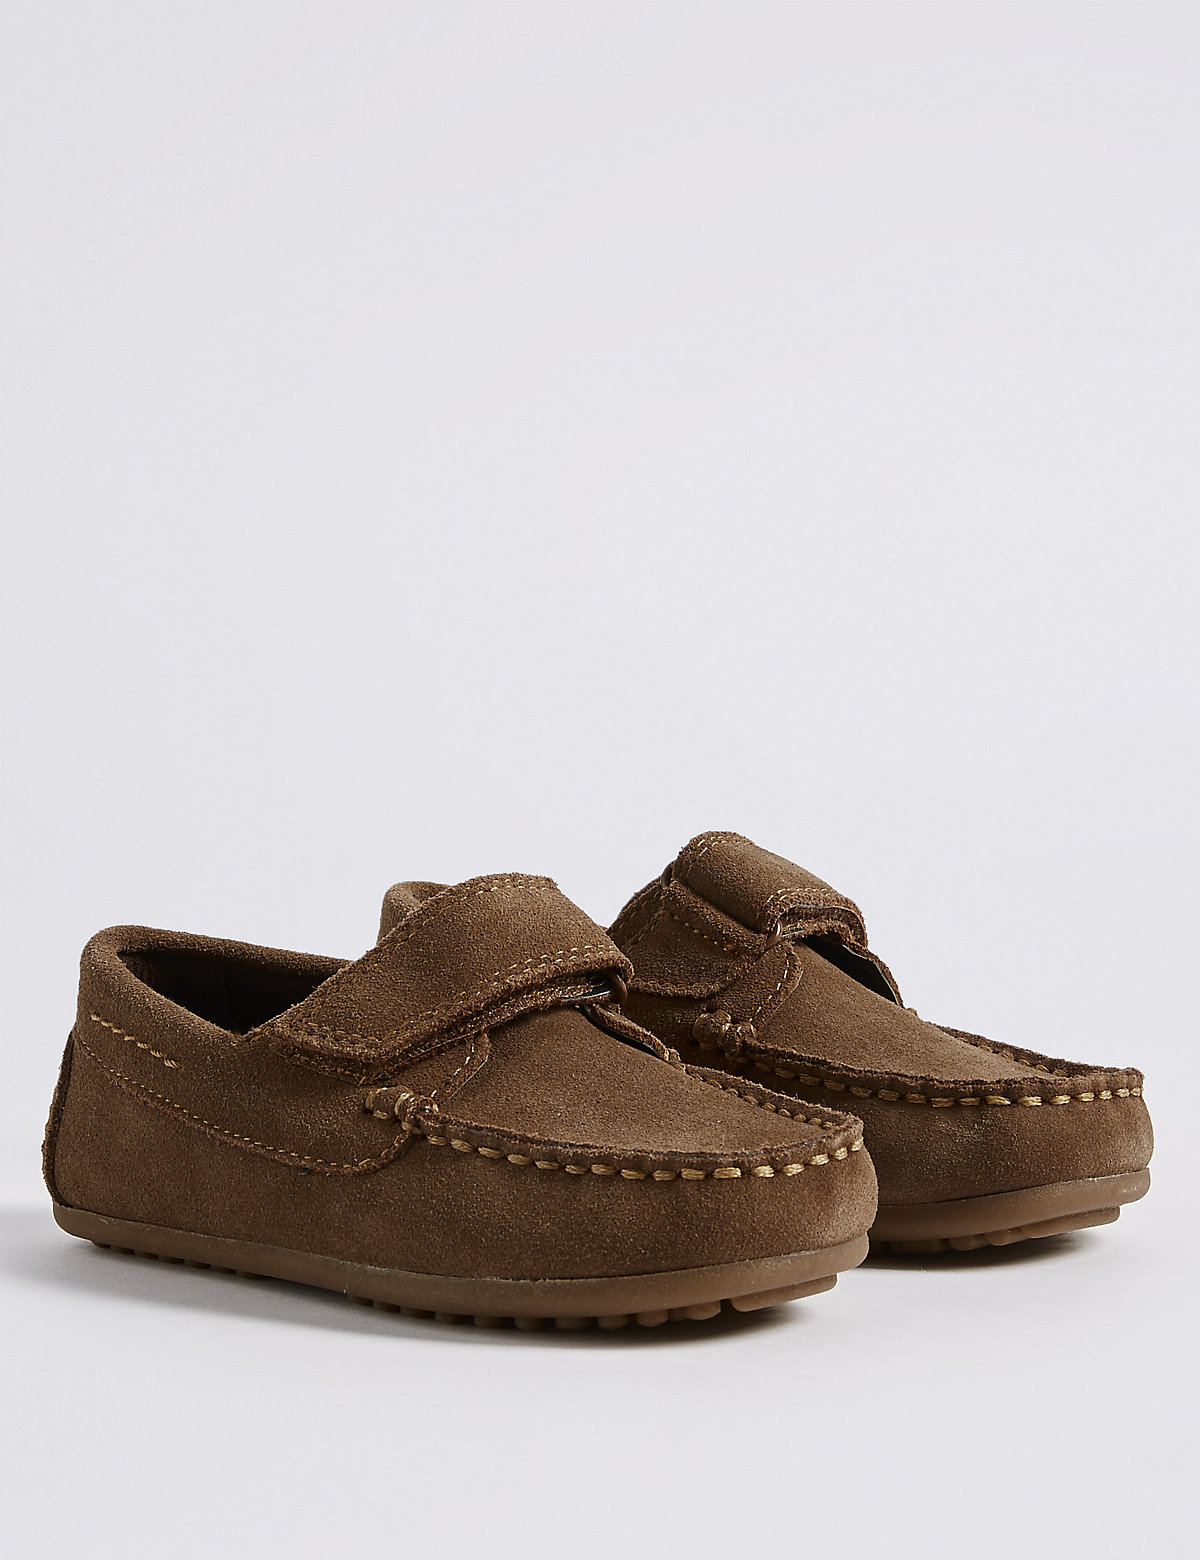 Image of Kids' Suede Driver Shoes